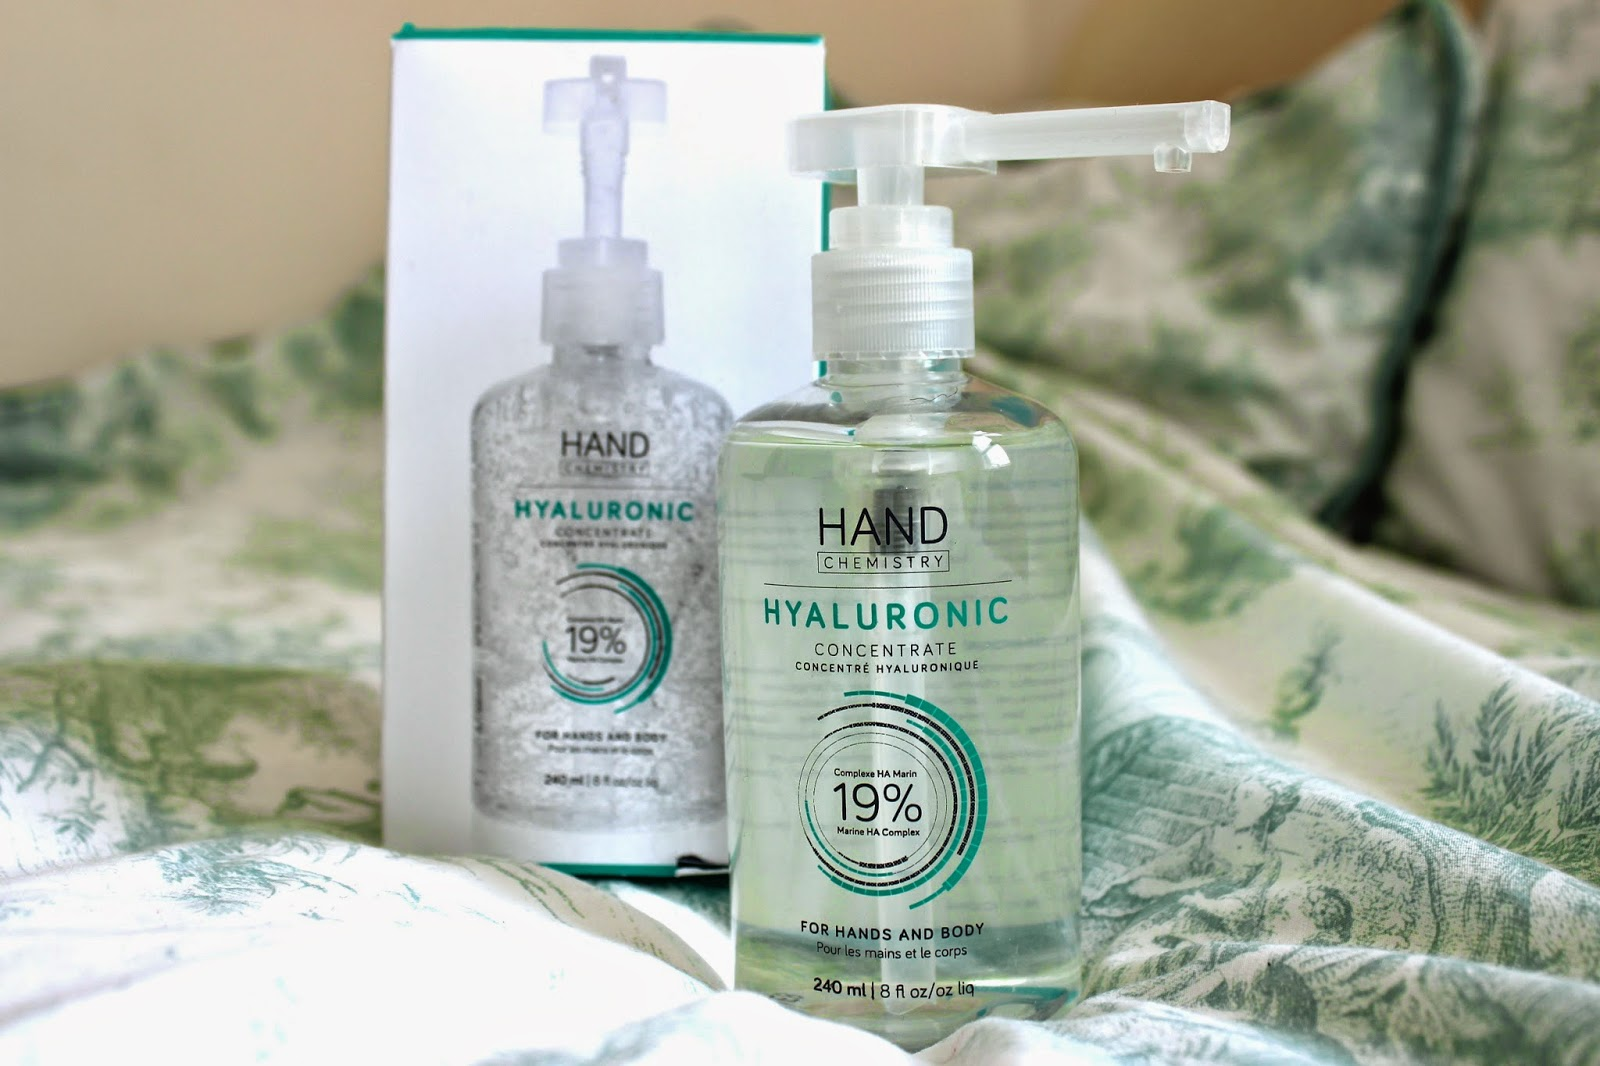 Hand Chemistry Hyaluronic Concentrate Review Body Cream Acid Review Blog Girl Culture